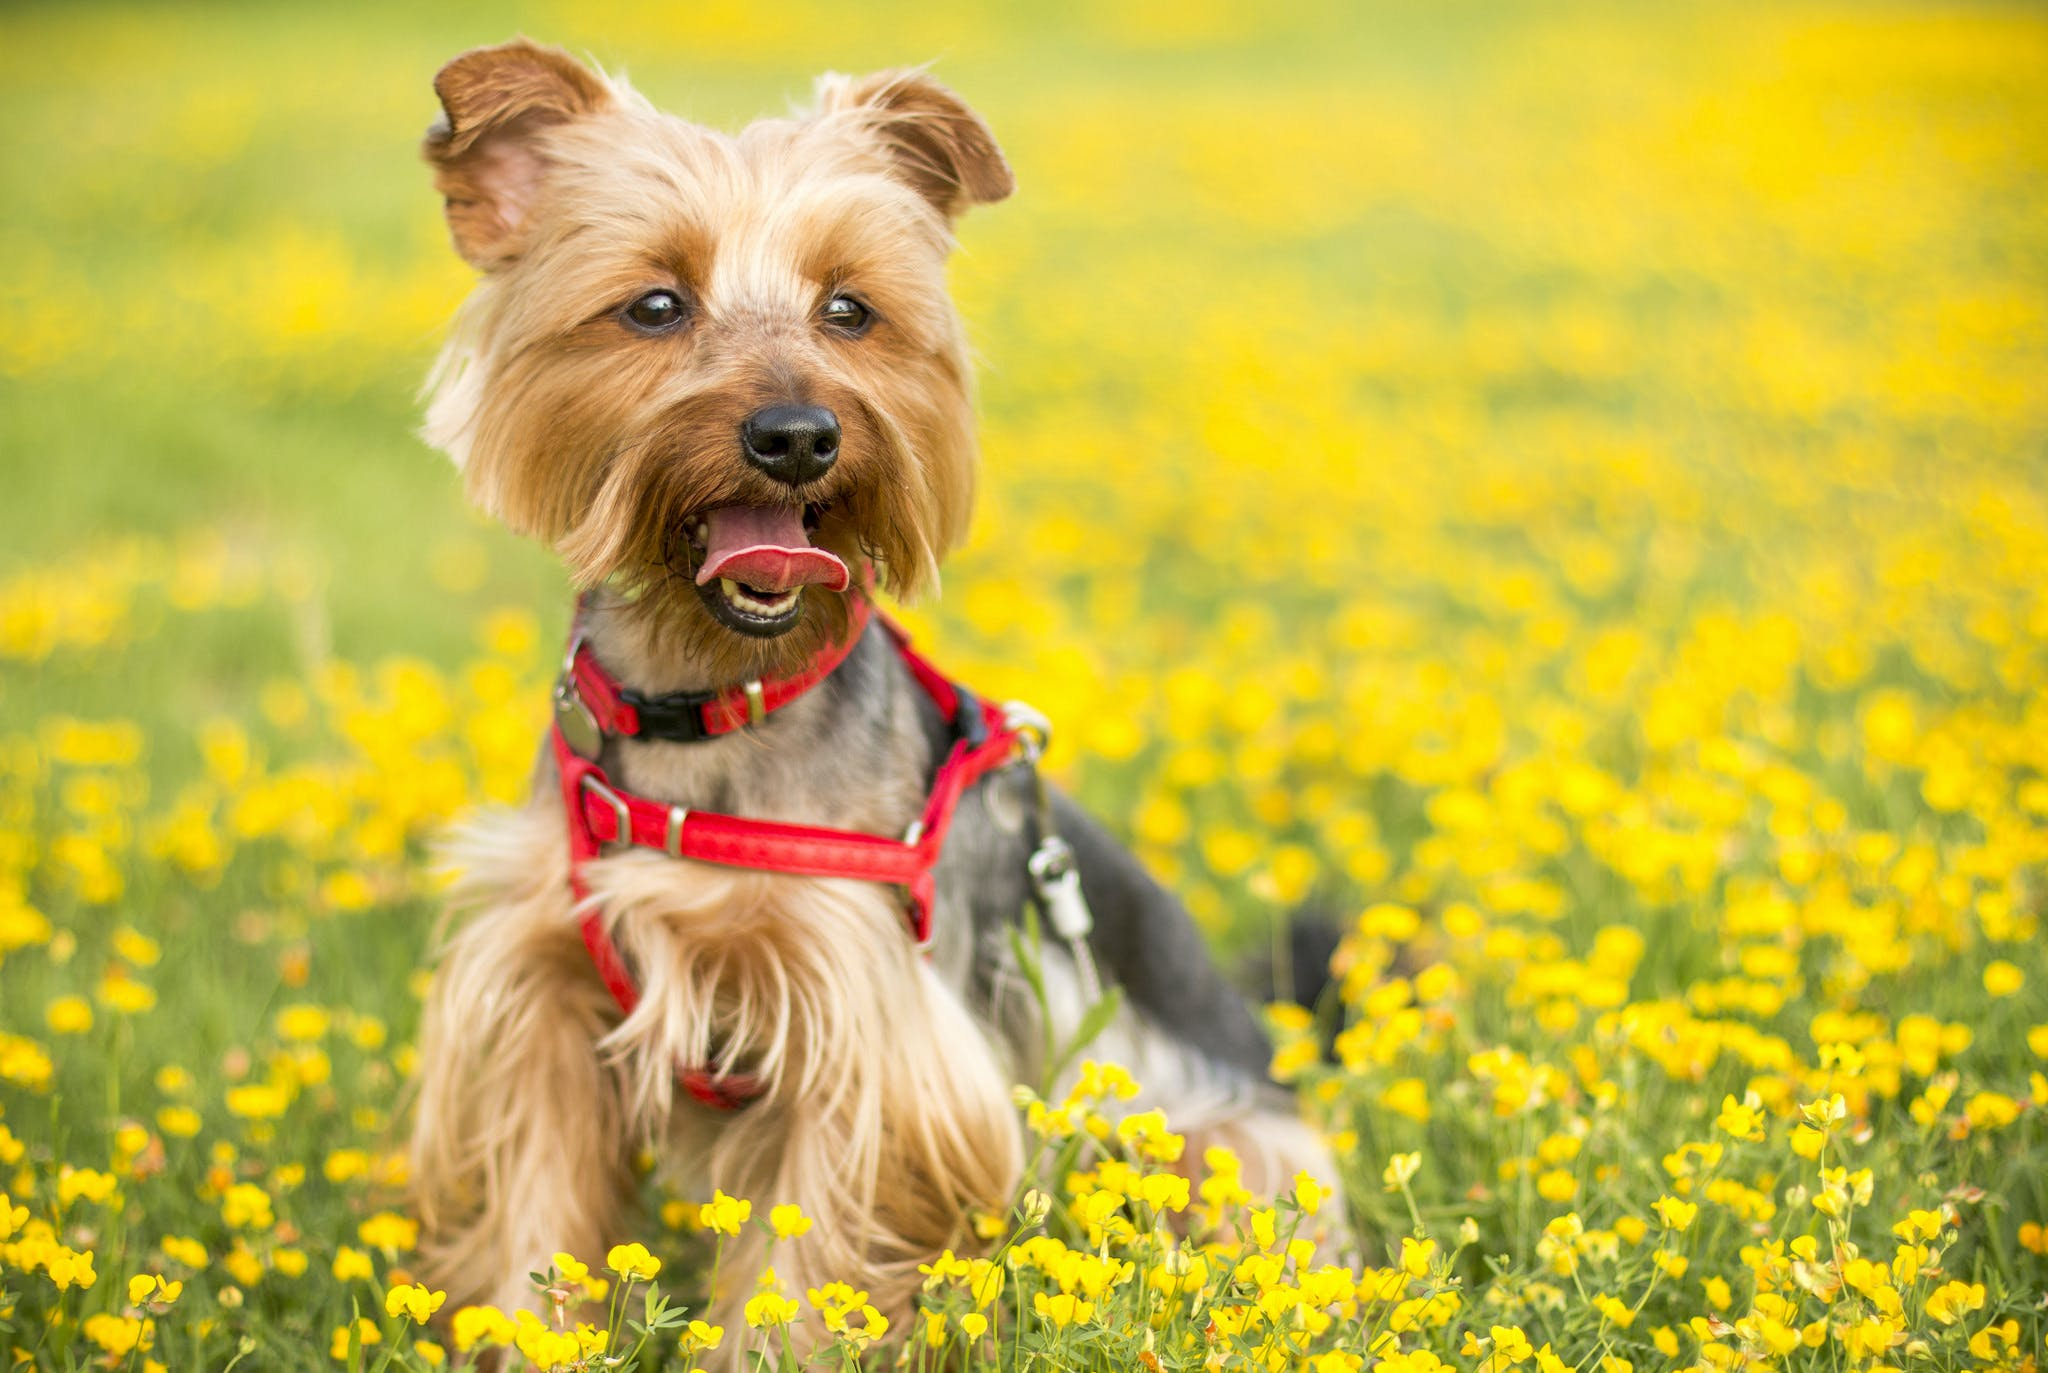 Tan and Black Yorkshire Terrier